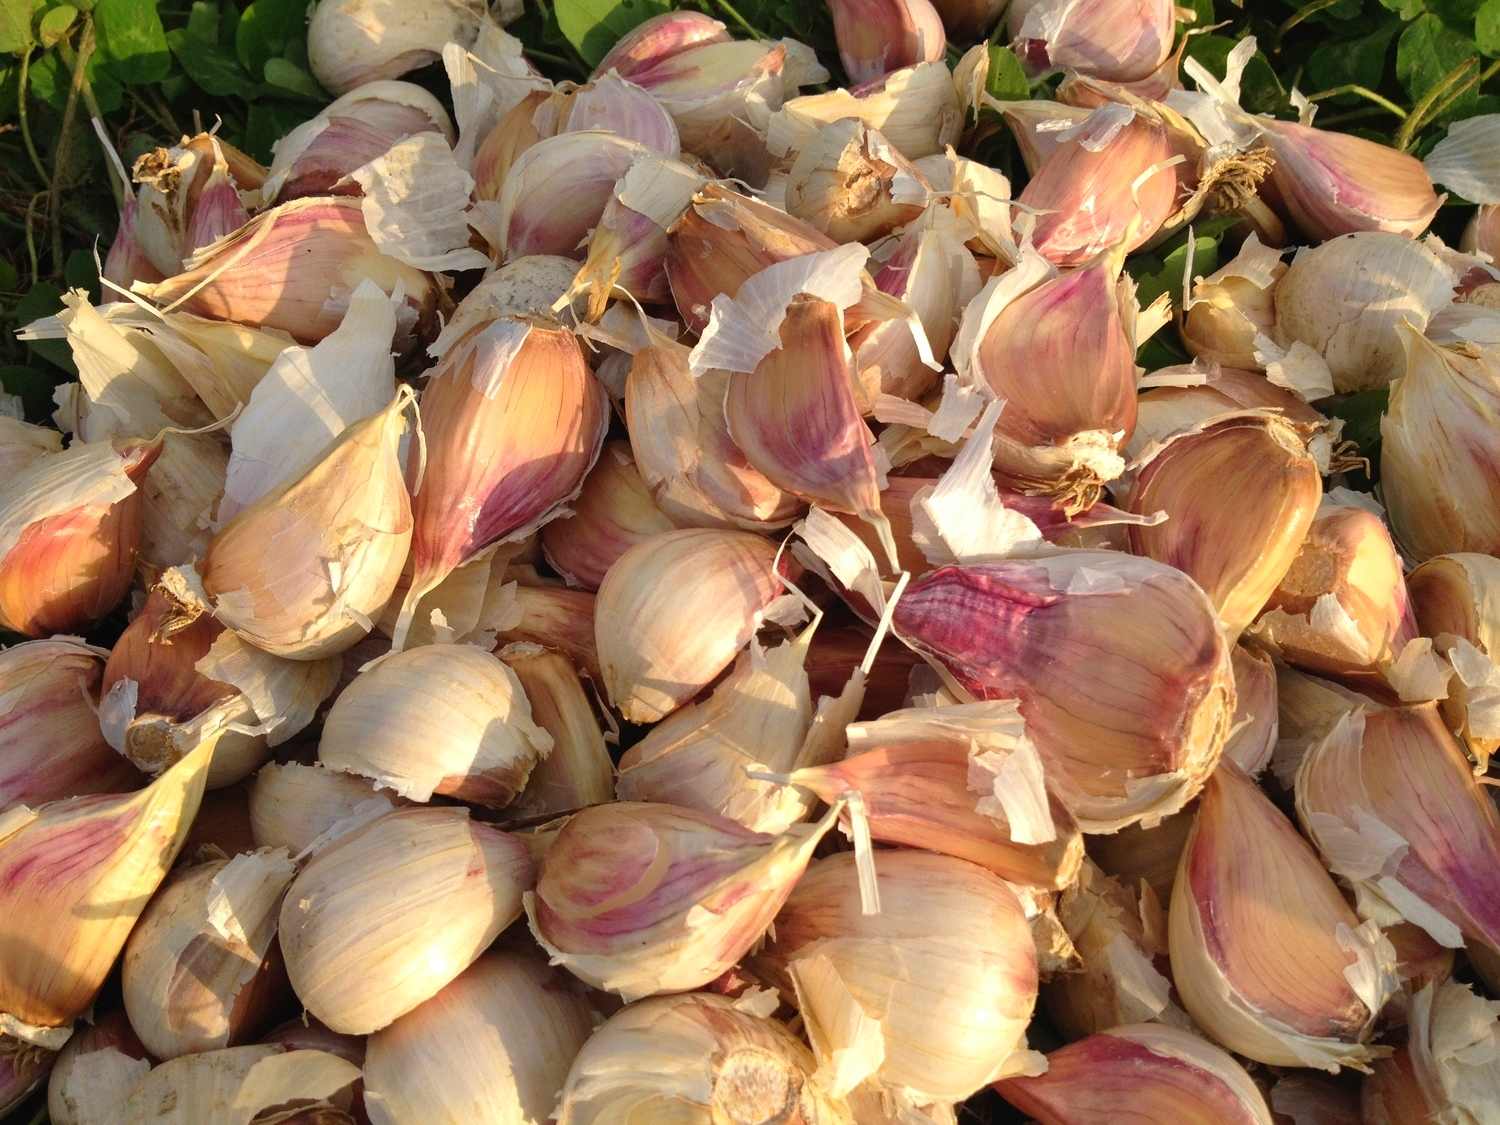 Garlic separated from the heads, ready for planting.